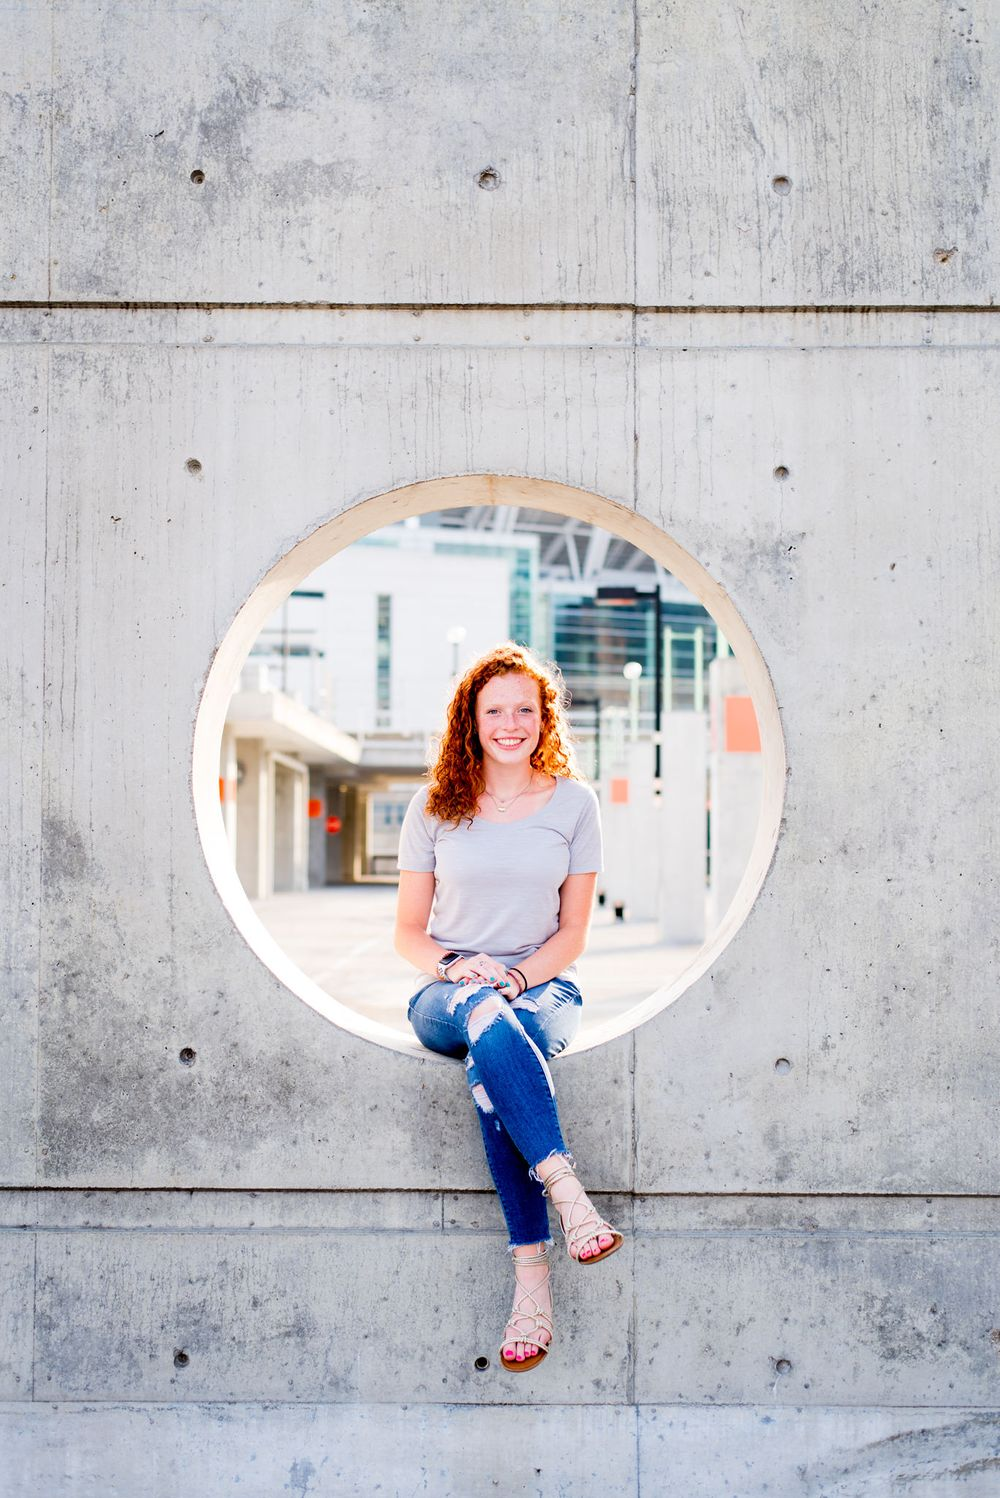 young woman with curly red hair sitting in a circle cut out from concrete wall in parking structure, smiling